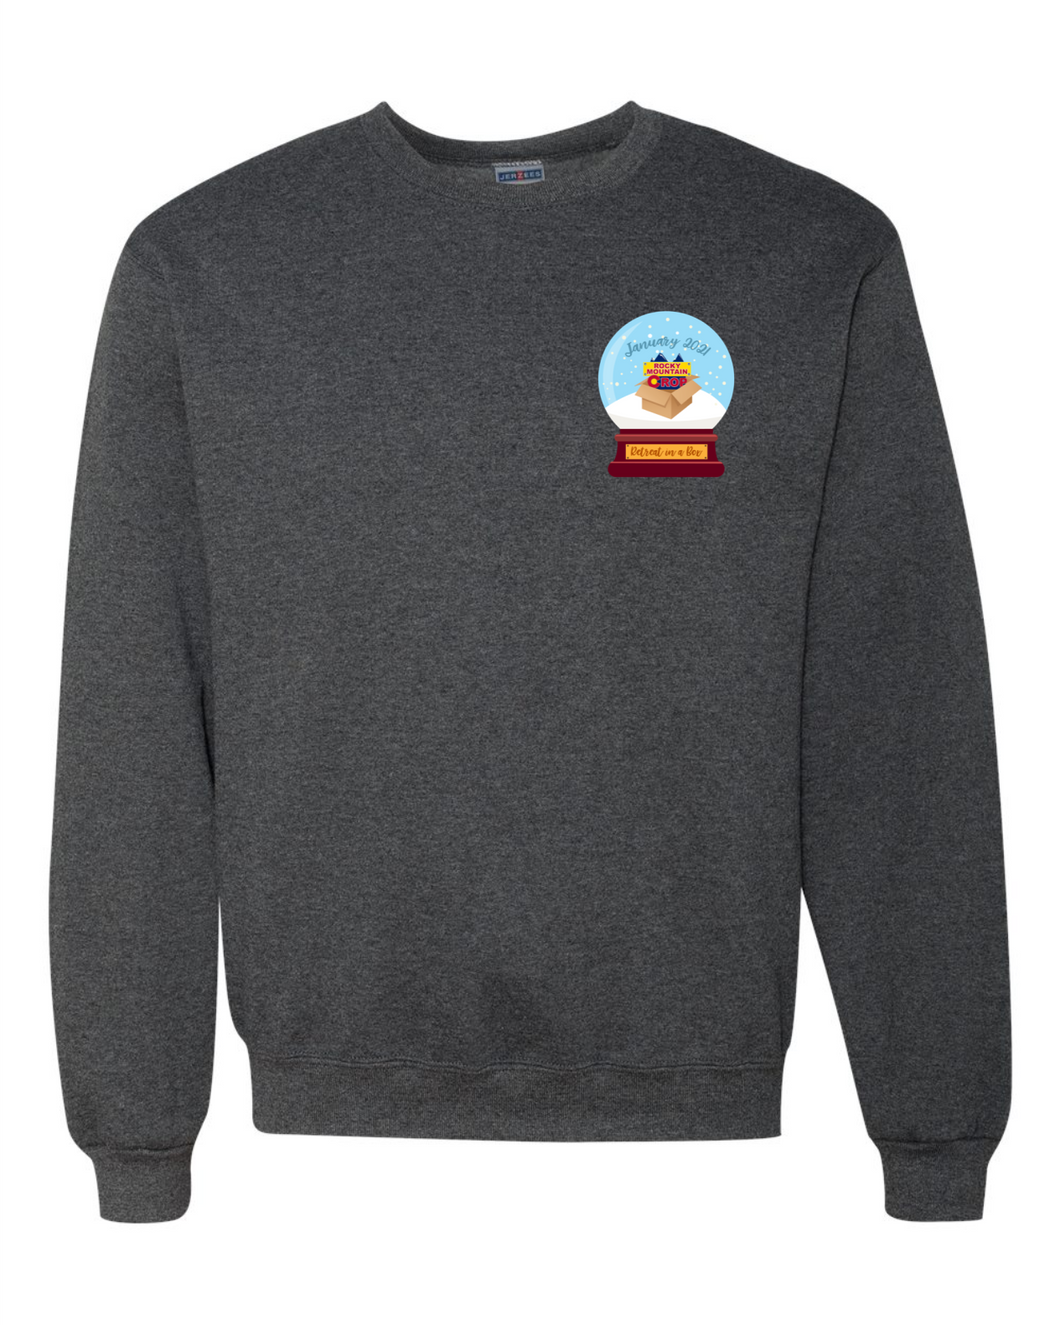 Rocky Mountain Crop 2021 Crewneck Sweatshirt